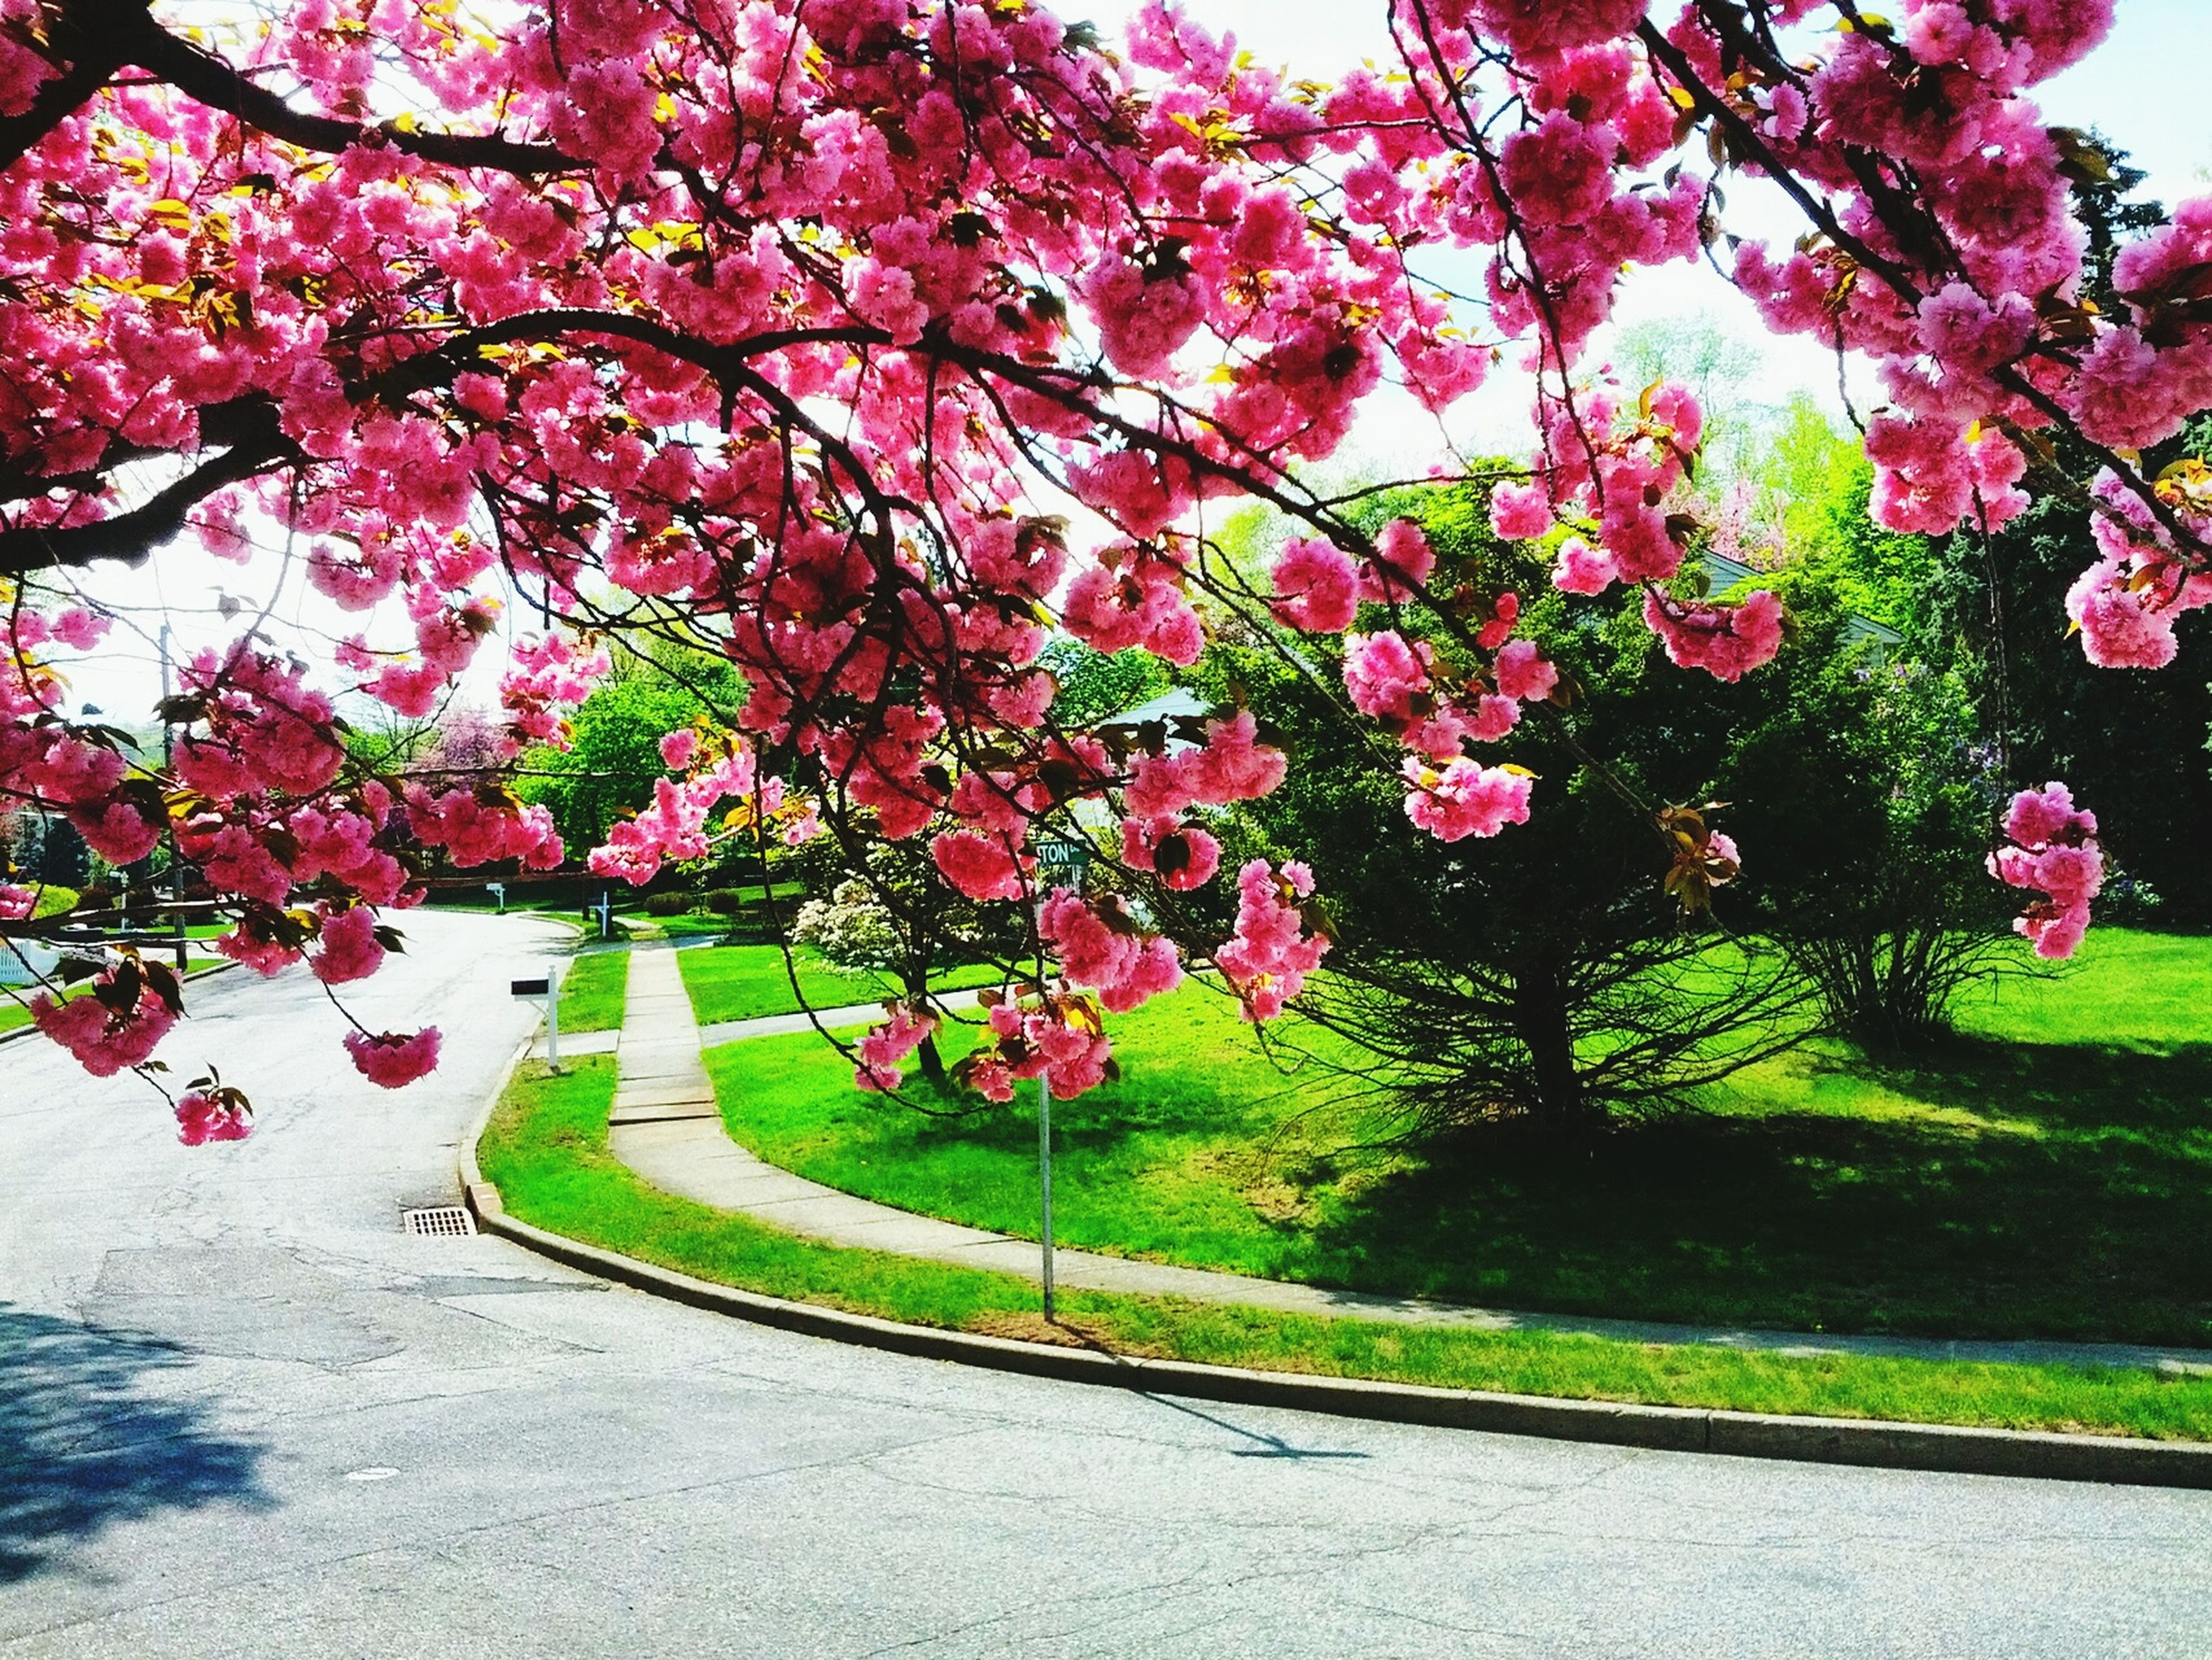 flower, tree, growth, pink color, park - man made space, freshness, beauty in nature, nature, branch, green color, blossom, fragility, plant, park, in bloom, day, garden, outdoors, footpath, formal garden